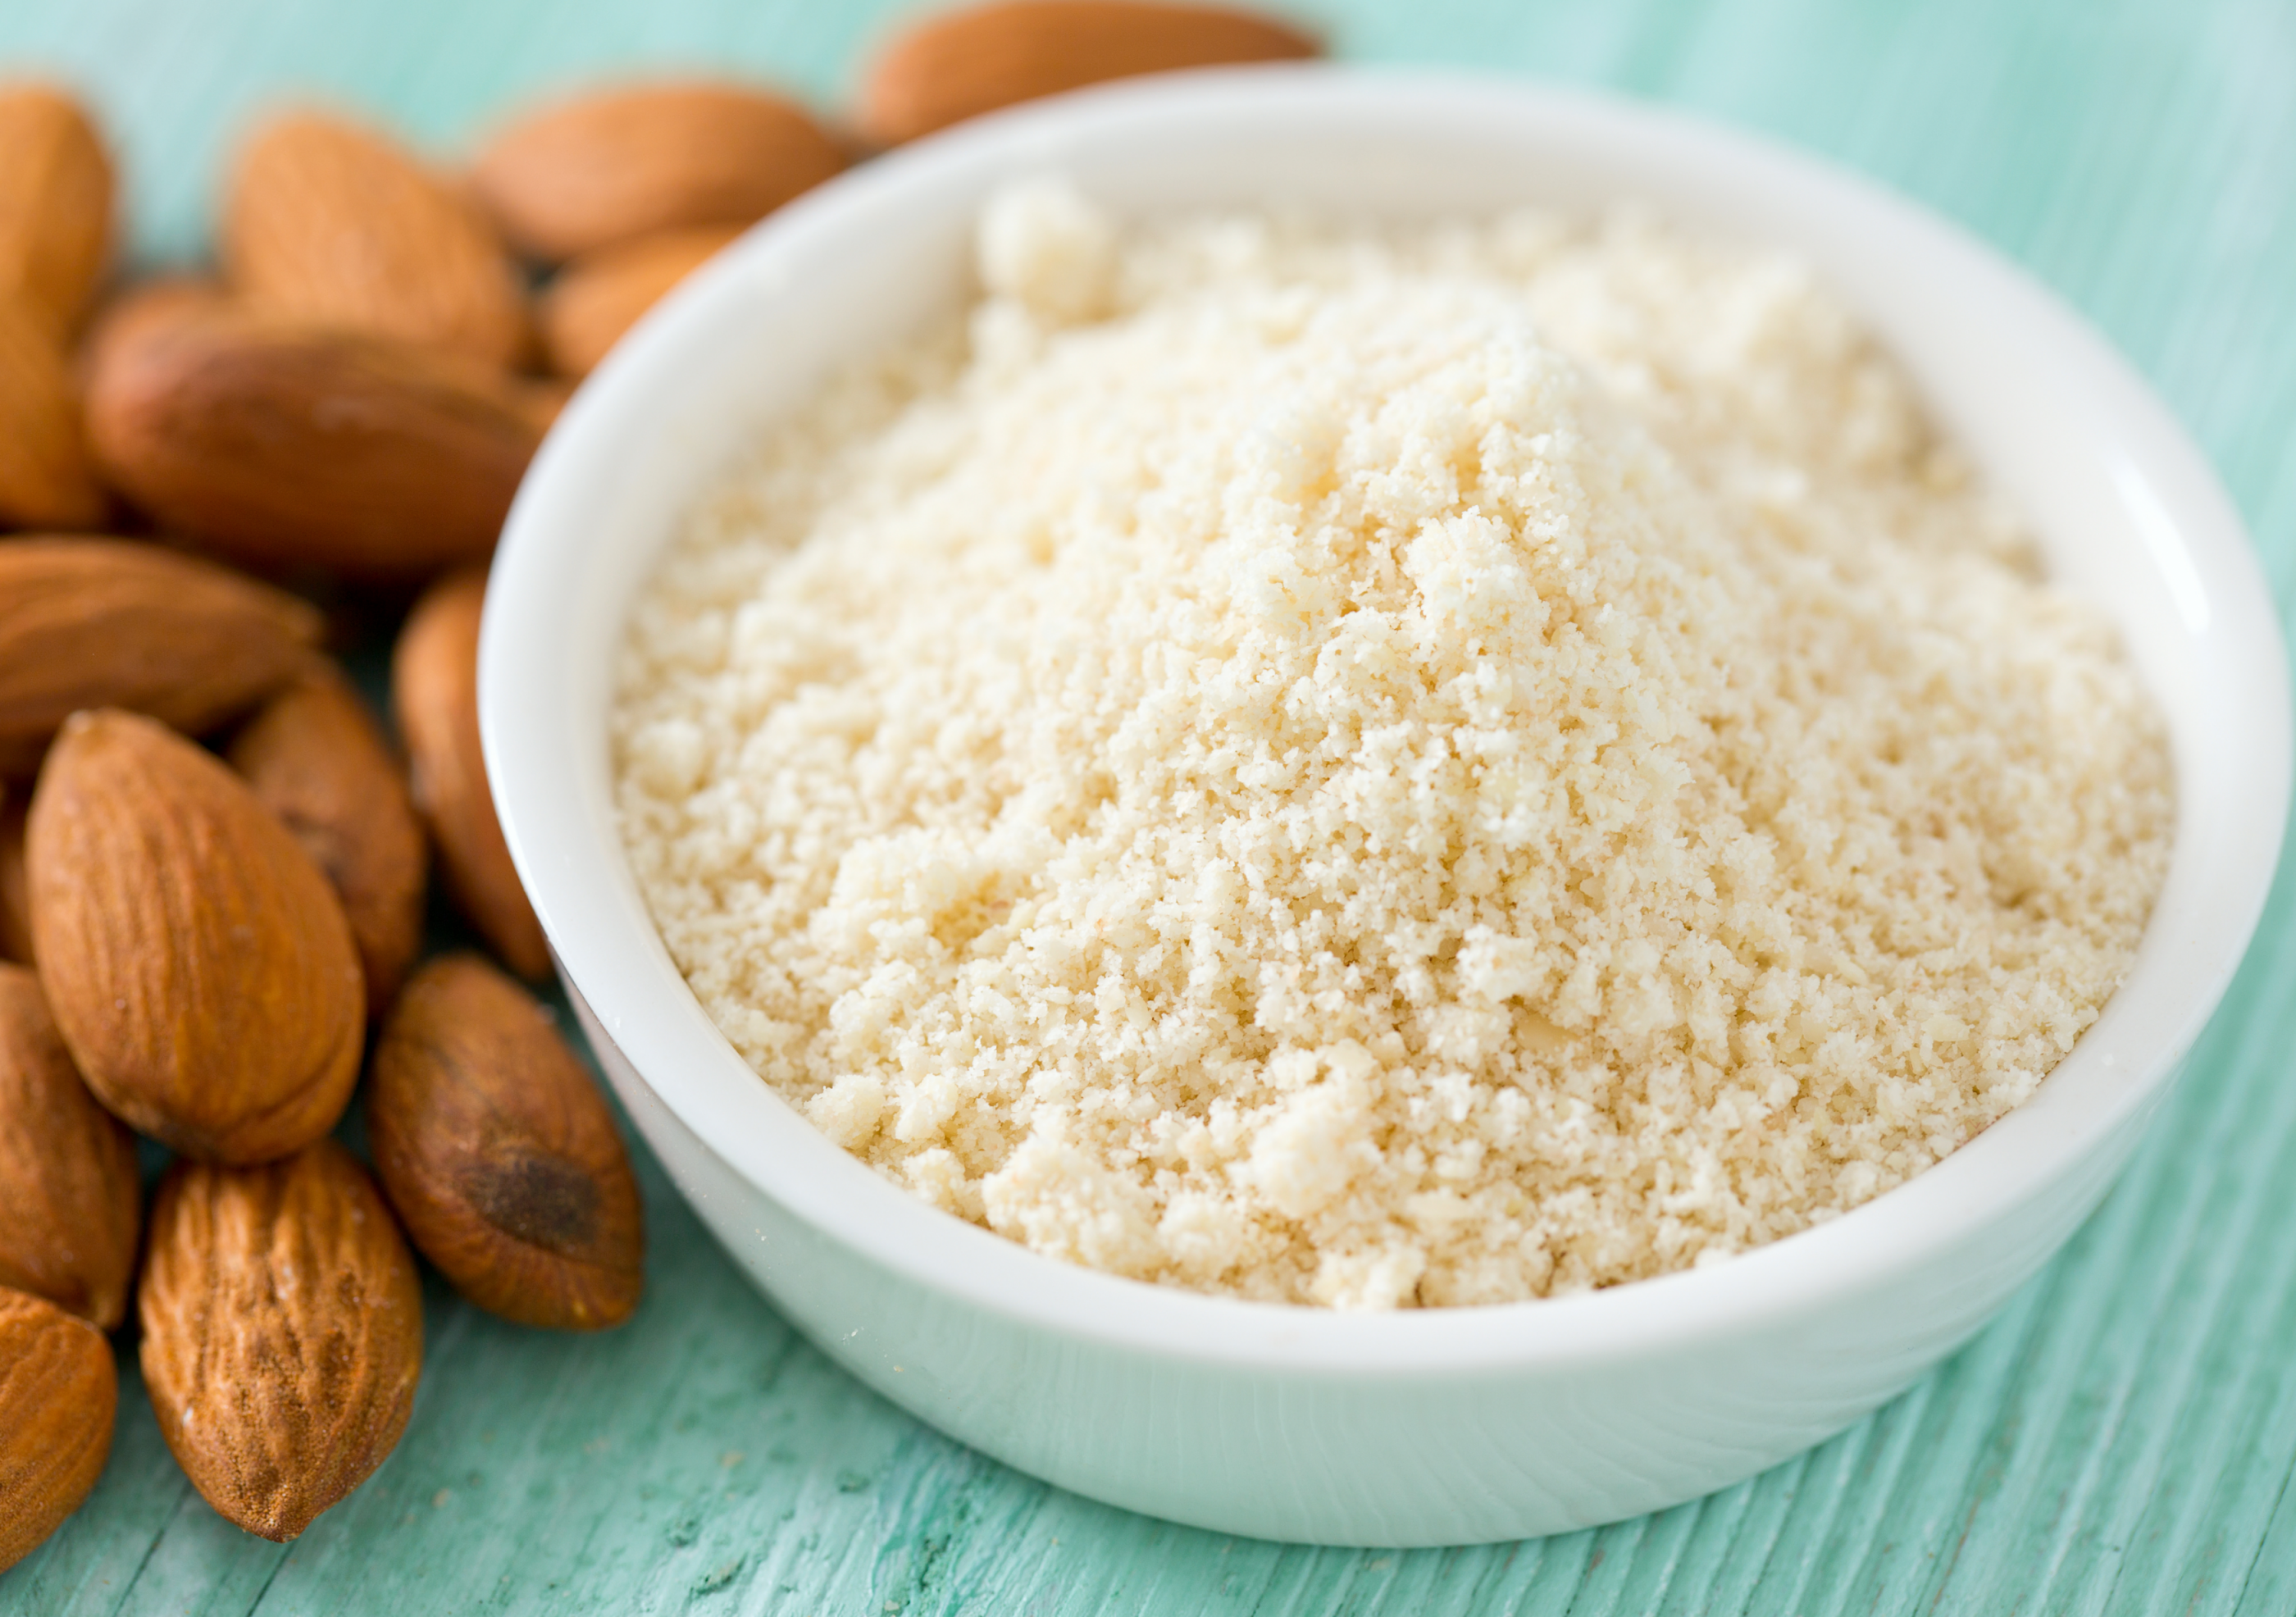 What is almond meal flour